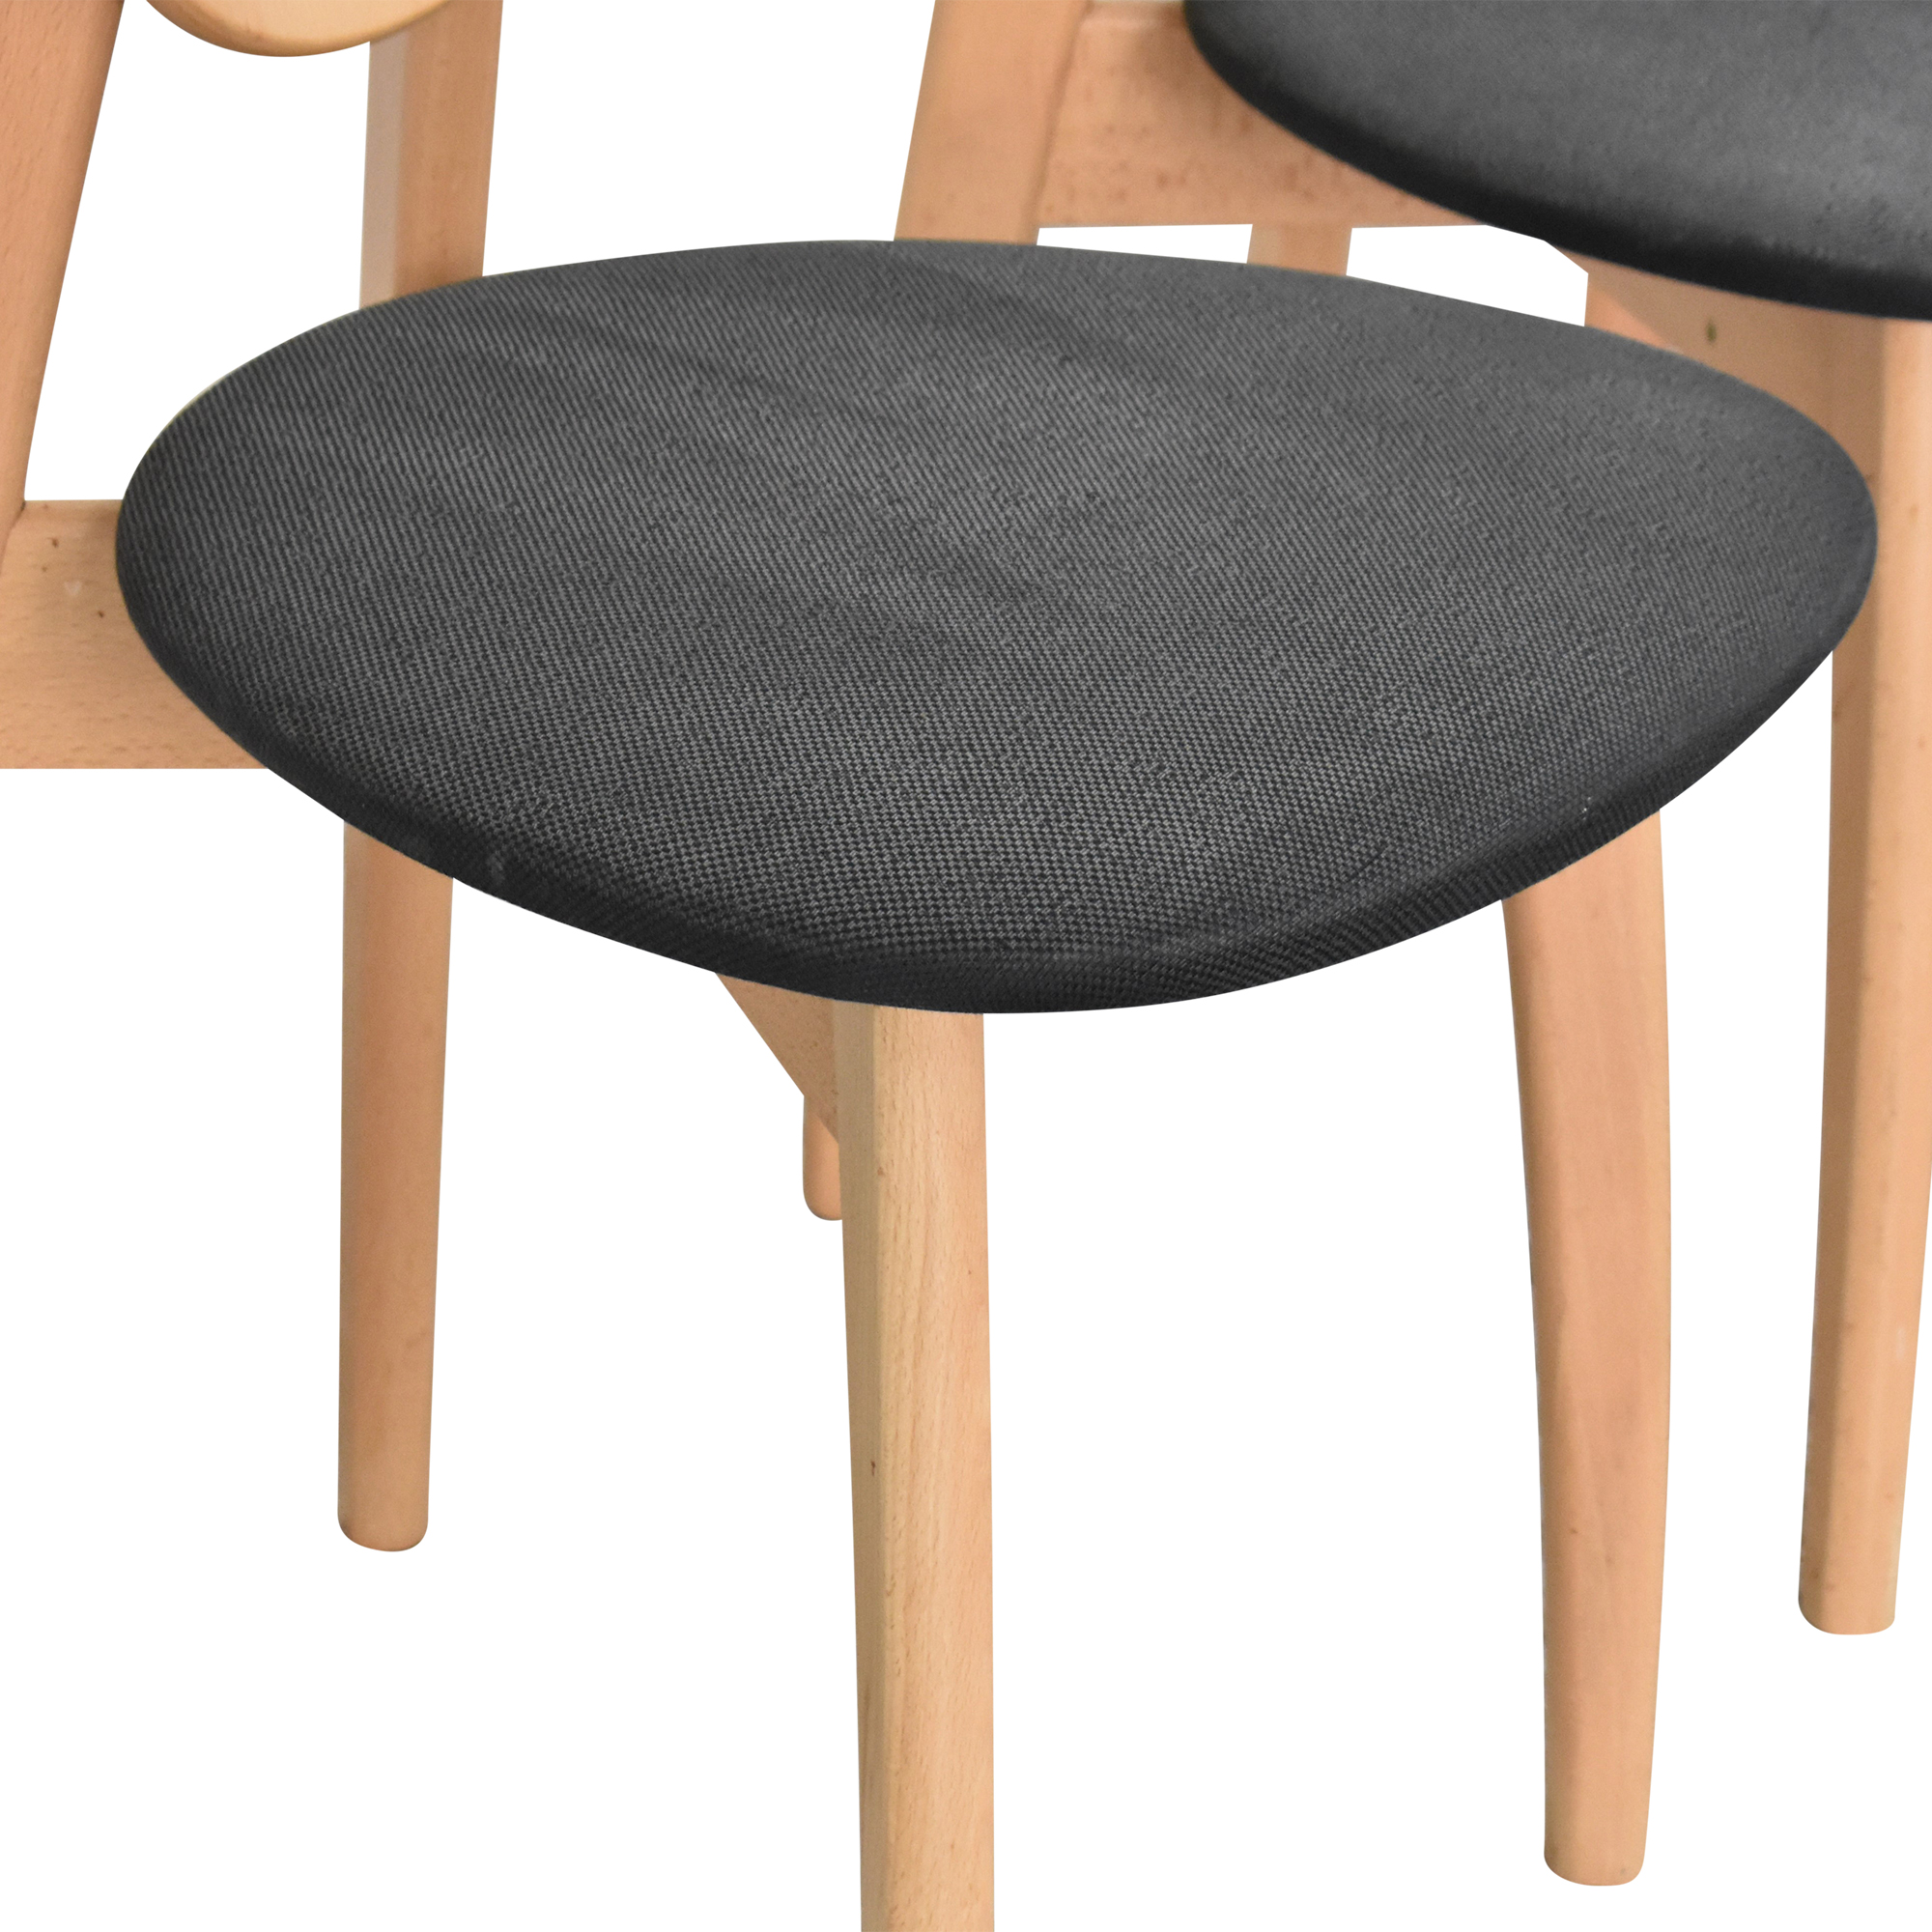 buy Calligaris Modern Dining Chairs Calligaris Dining Chairs